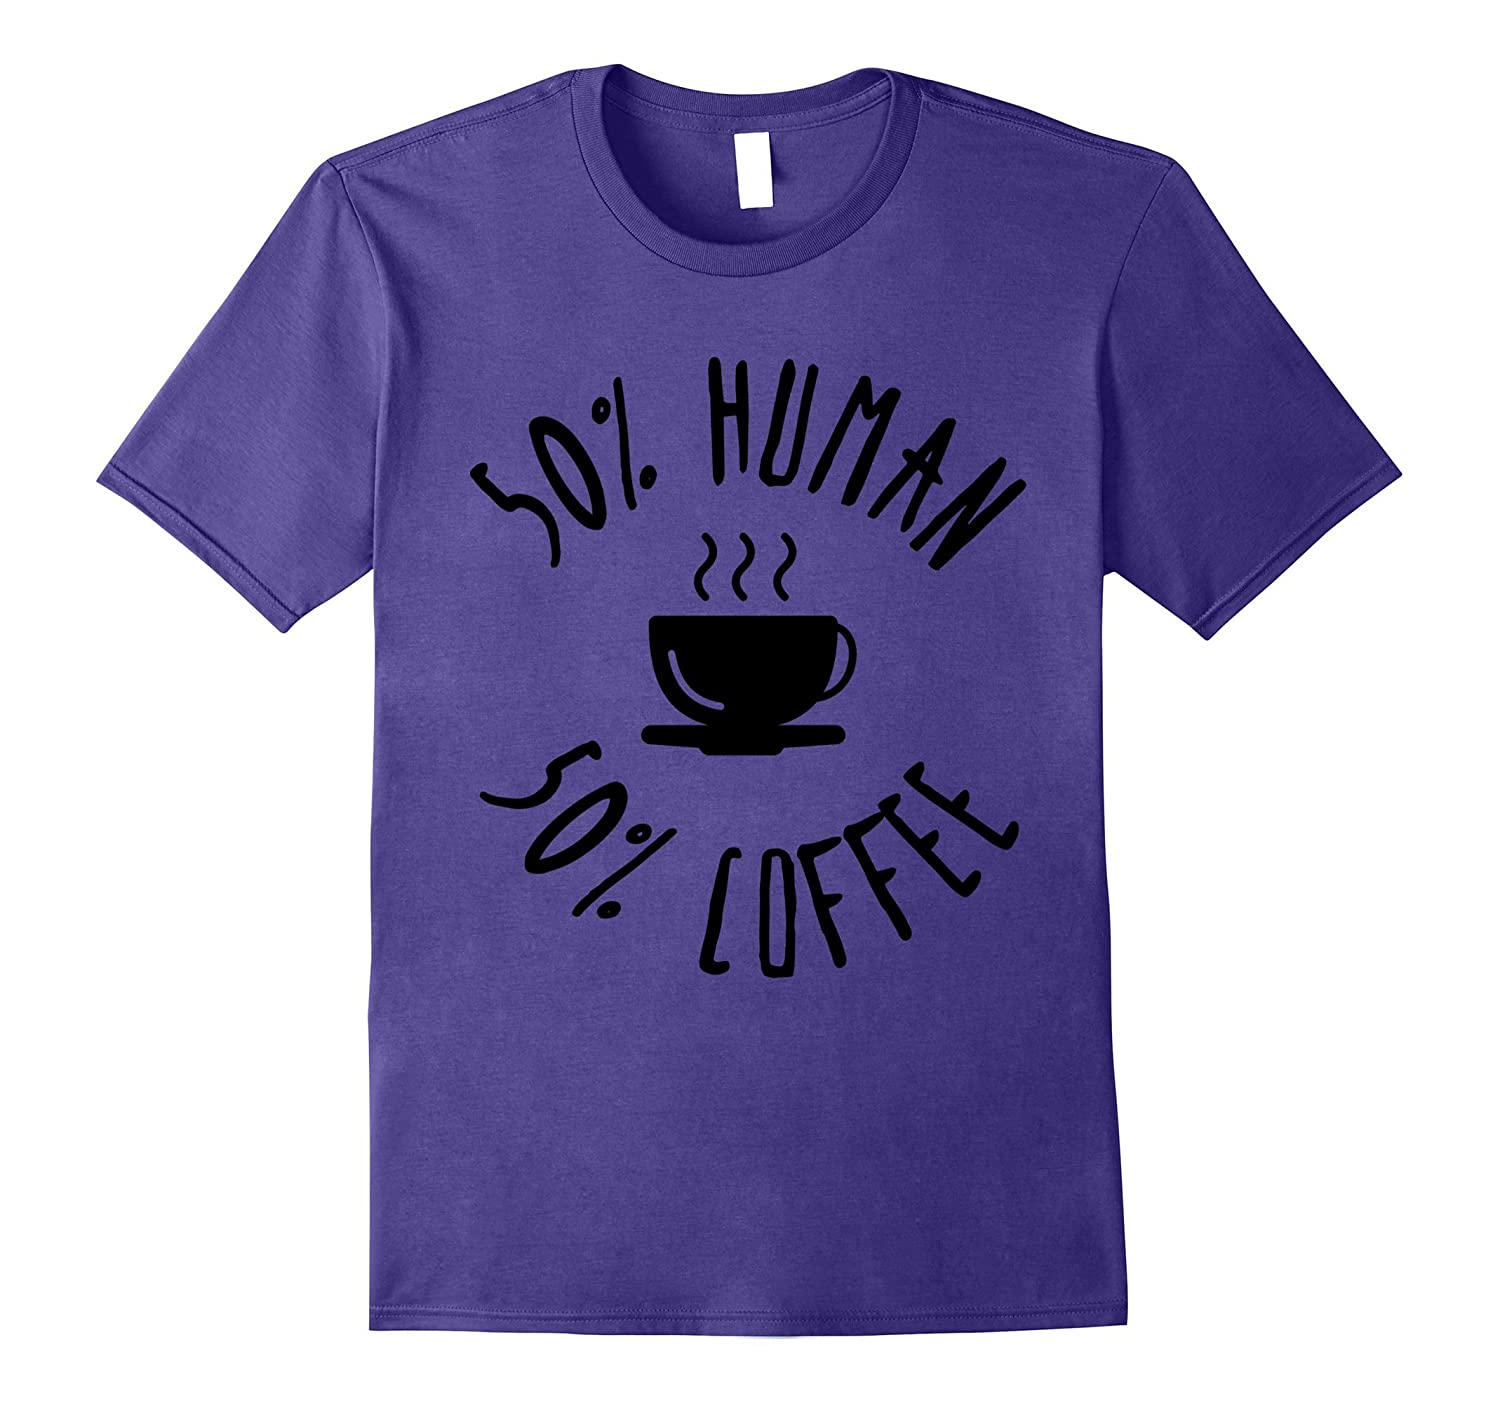 50% HUMAN 50% COFFEE LOVERS TEE FOR WOMEN MEN-4LVS